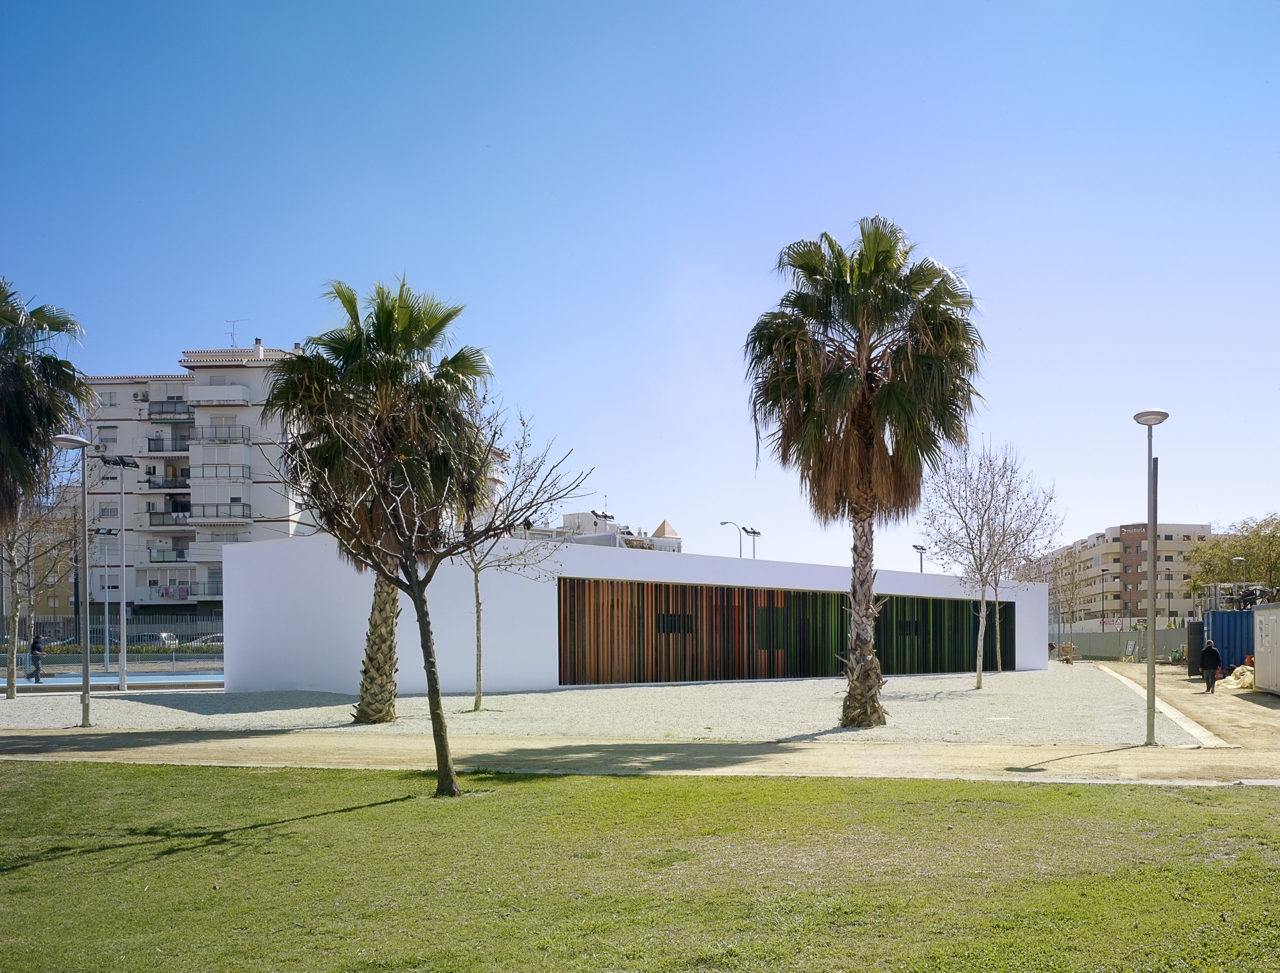 Rooms and sports facilities in a park / GANA Arquitectura